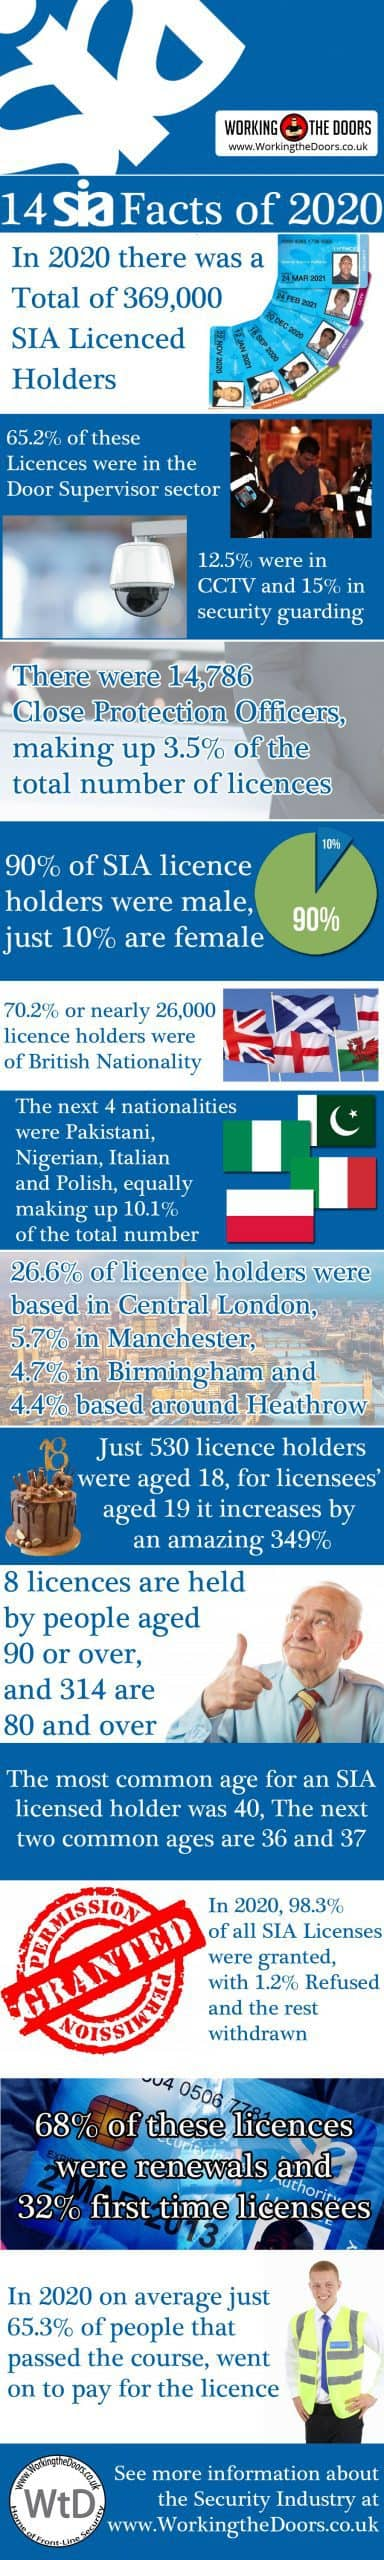 14 interesting facts about SIA licence holders